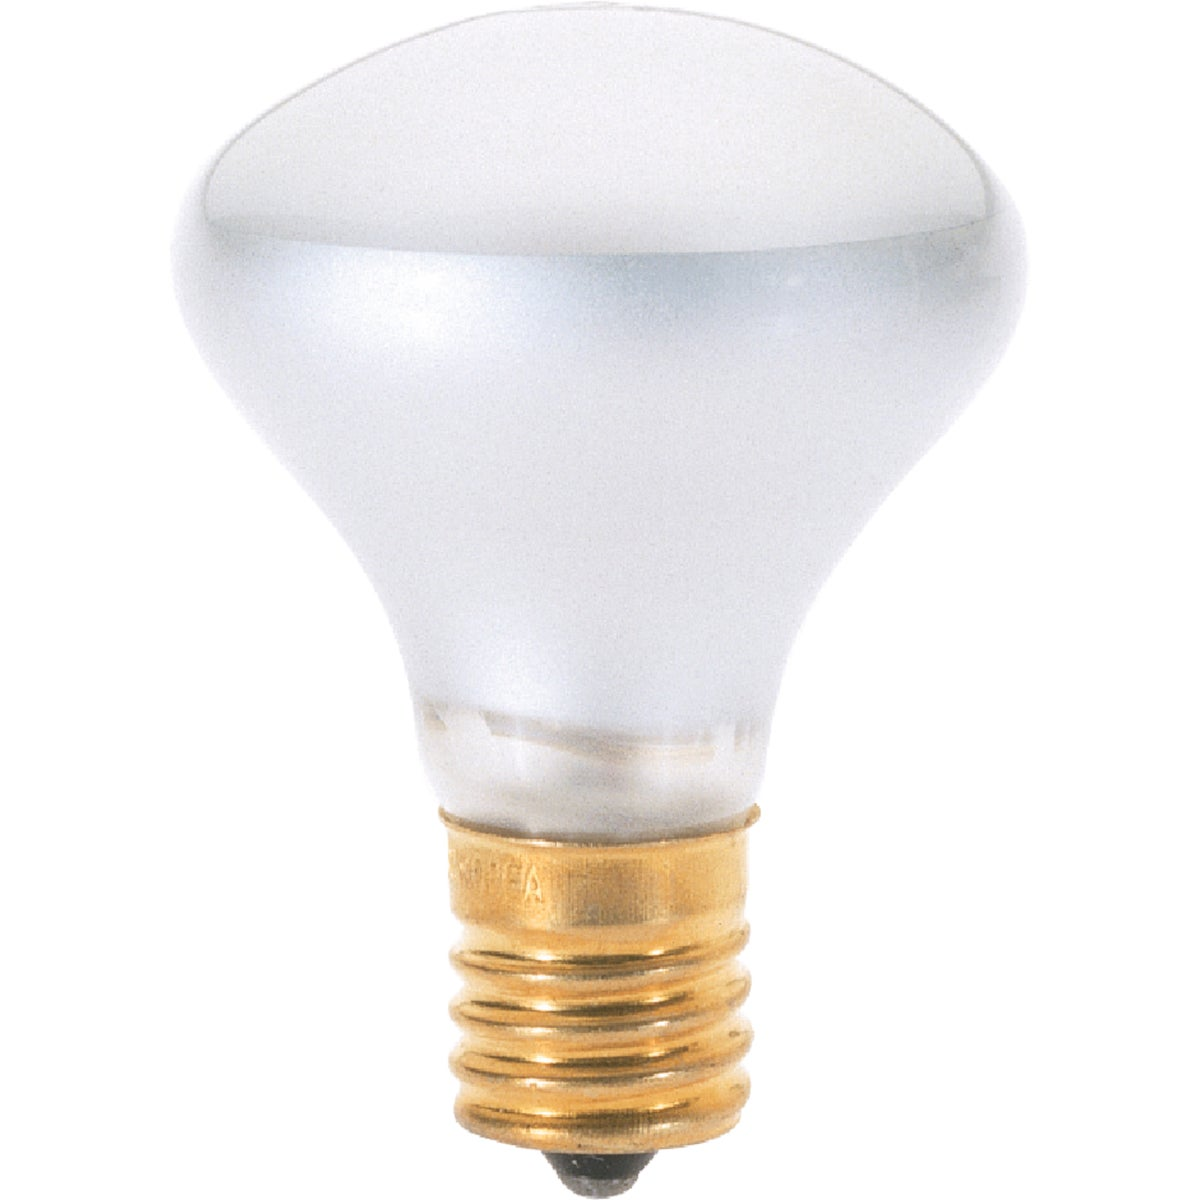 40W INT REFLECTOR BULB - 03626 by Westinghouse Lightng